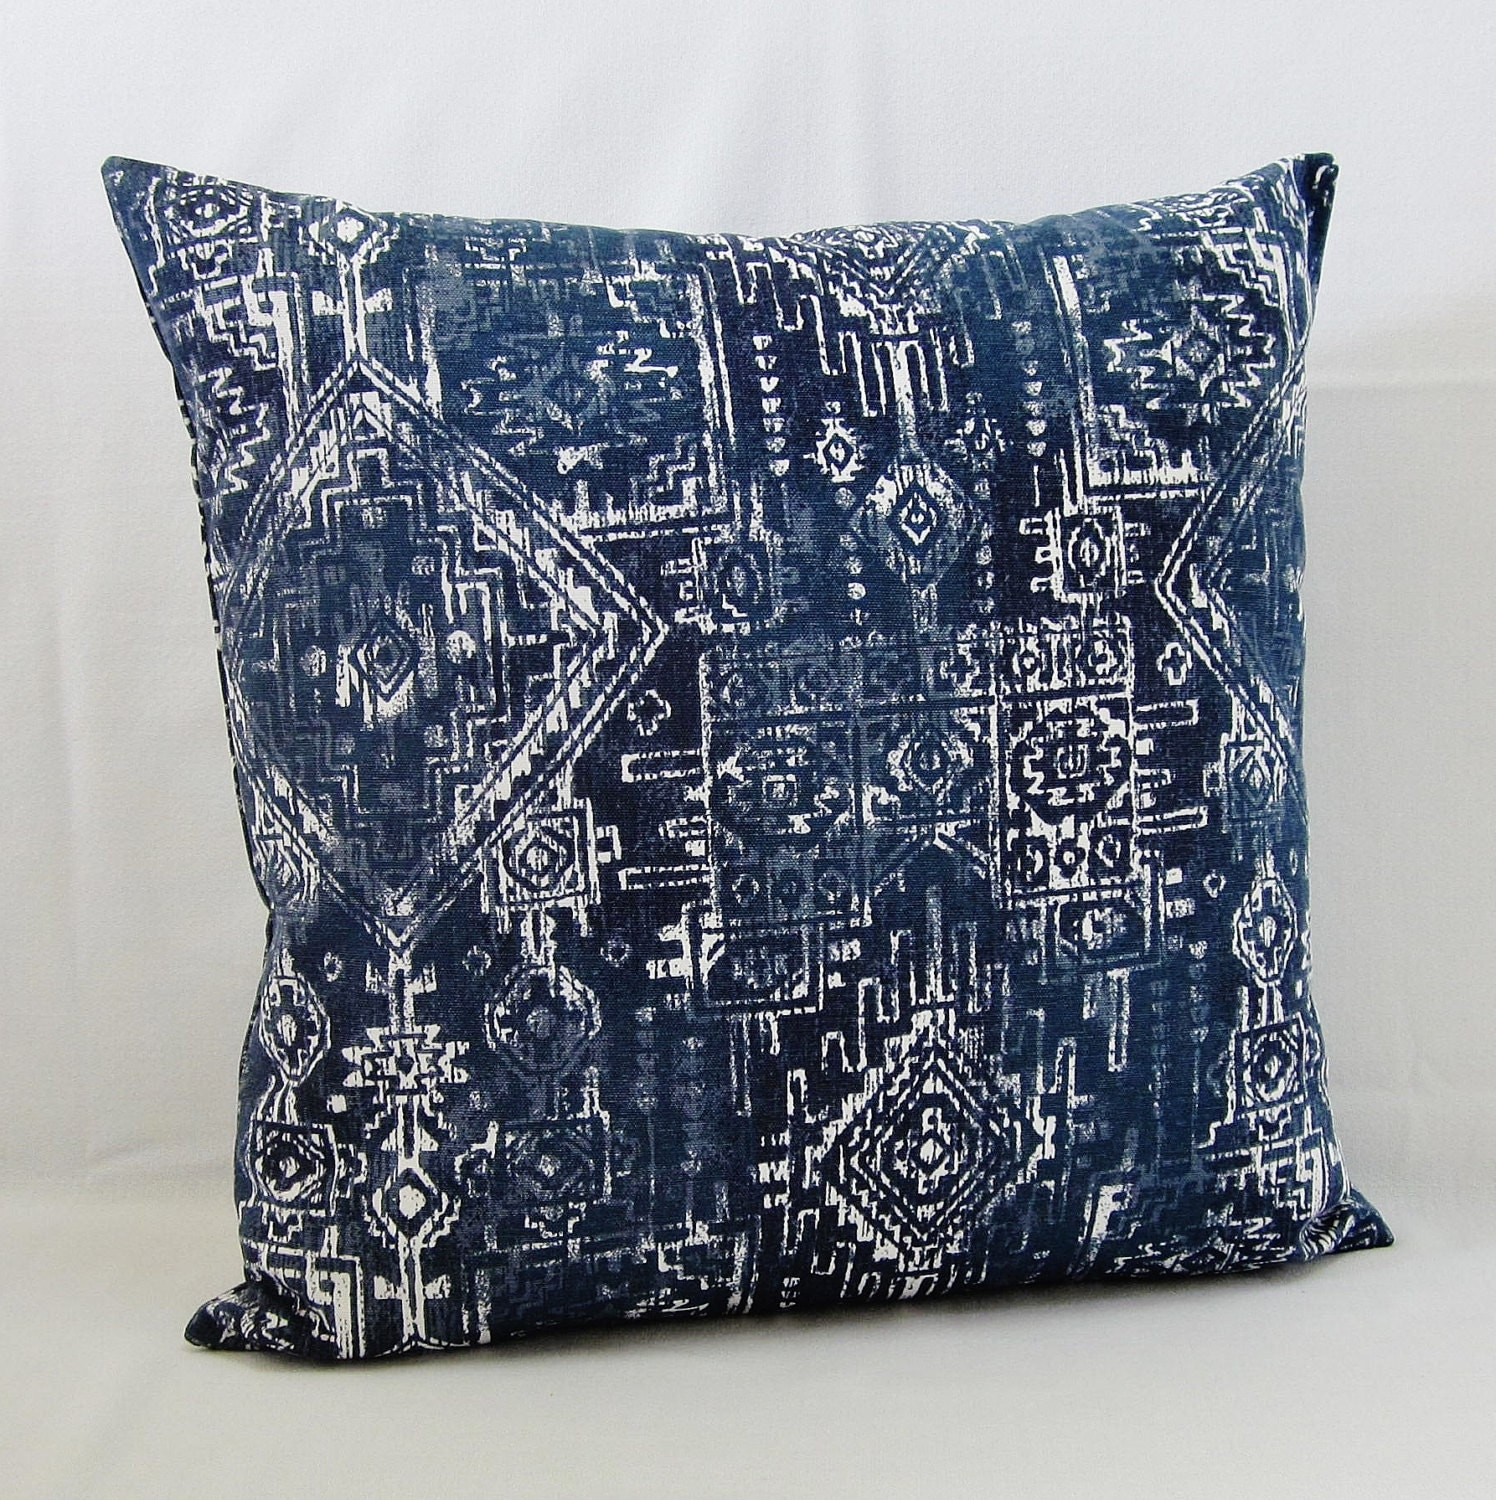 Navy Blue Throw Pillow Covers : Navy Blue Throw Pillow Cover Geometric Decorative Accent